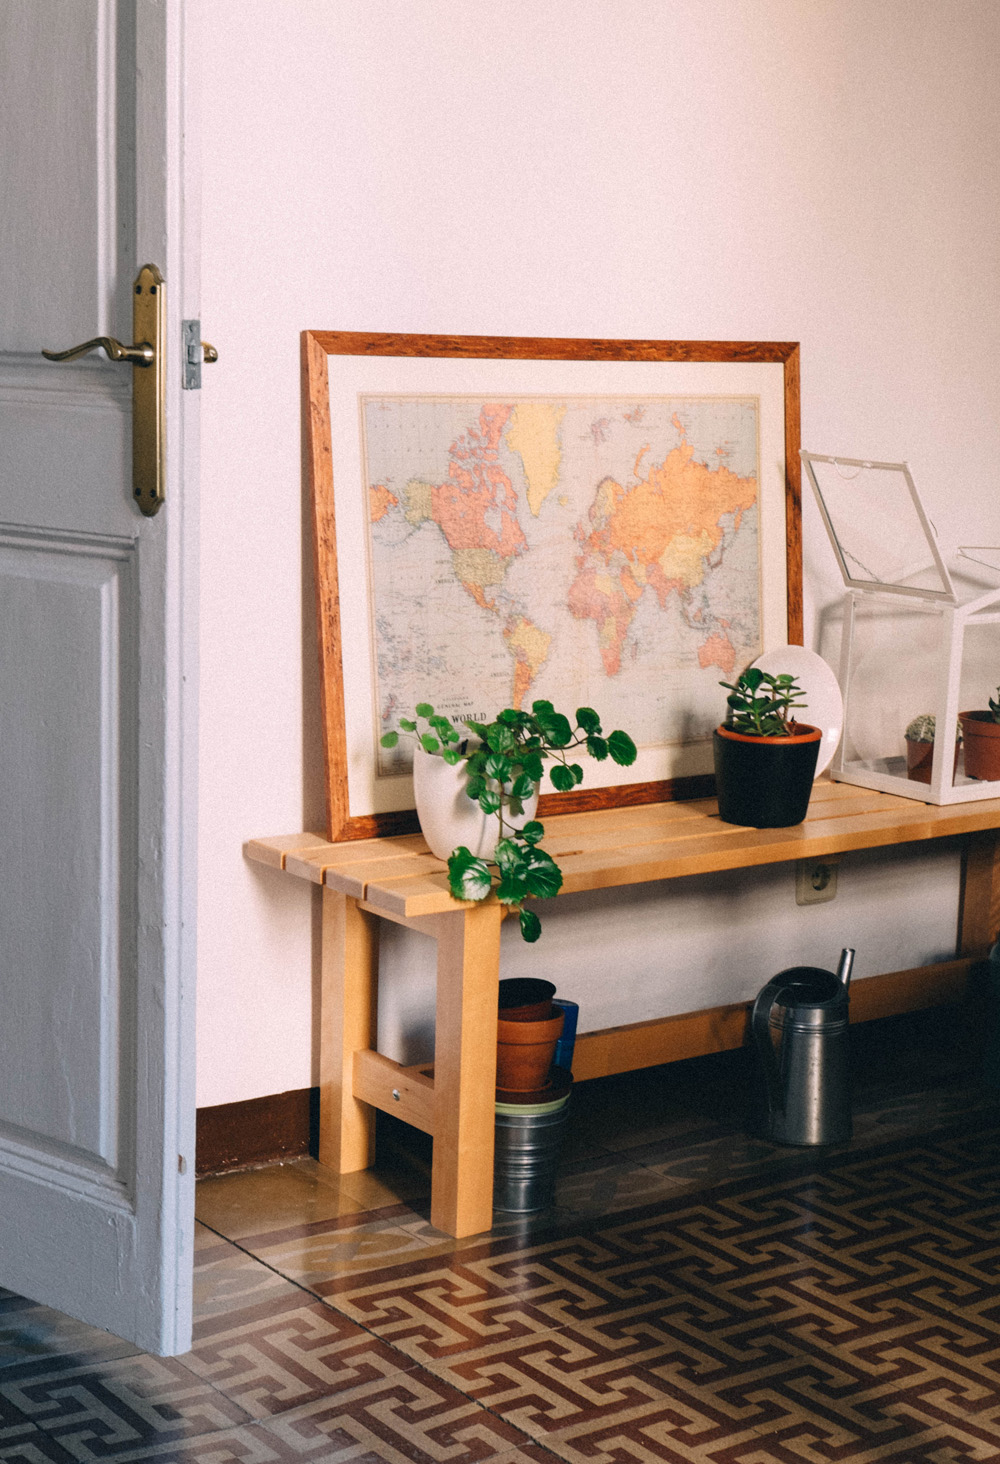 plants_at_home_small.jpg